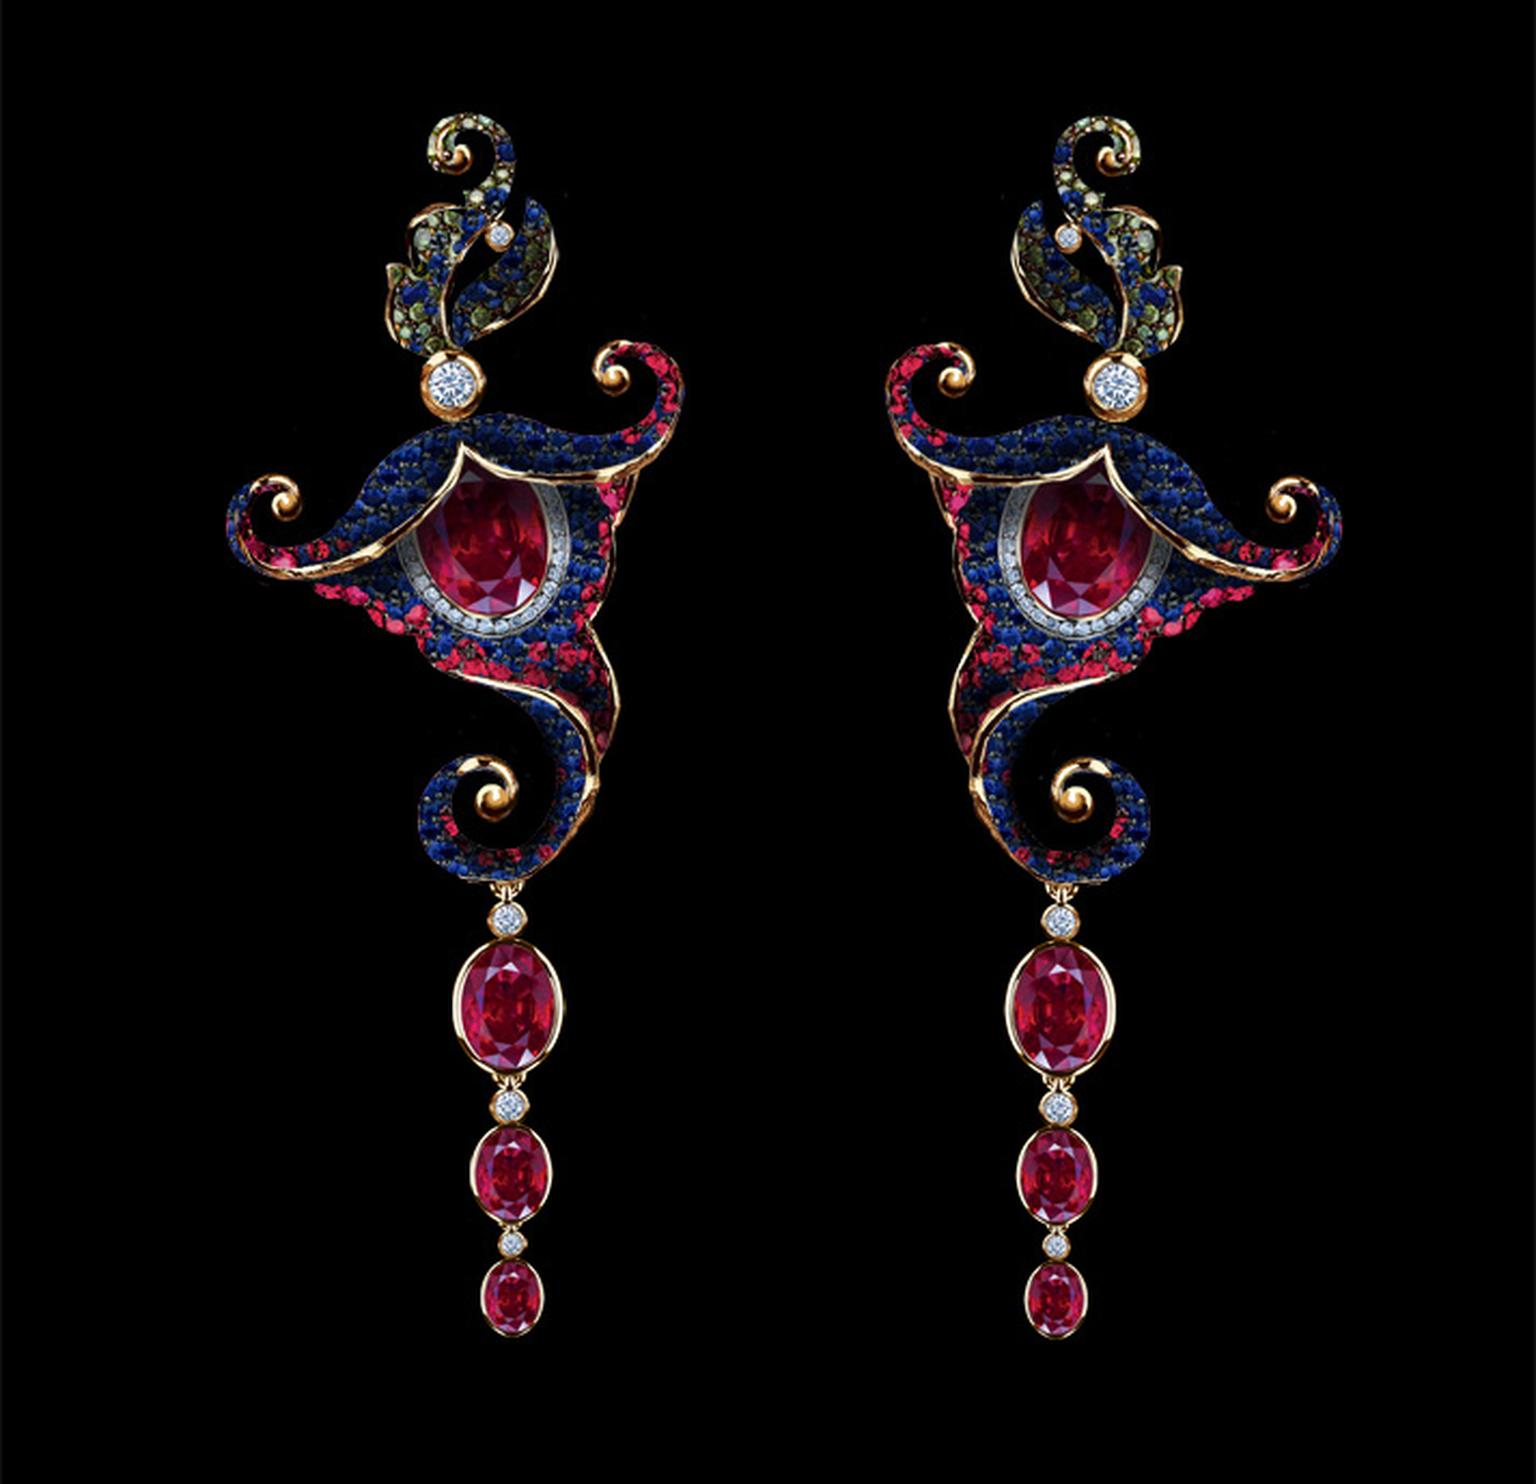 Jewellery Theatre Flower earrings in yellow gold from the Amaryllis Collection, set with rubies, sapphires and white, green and blue diamonds.